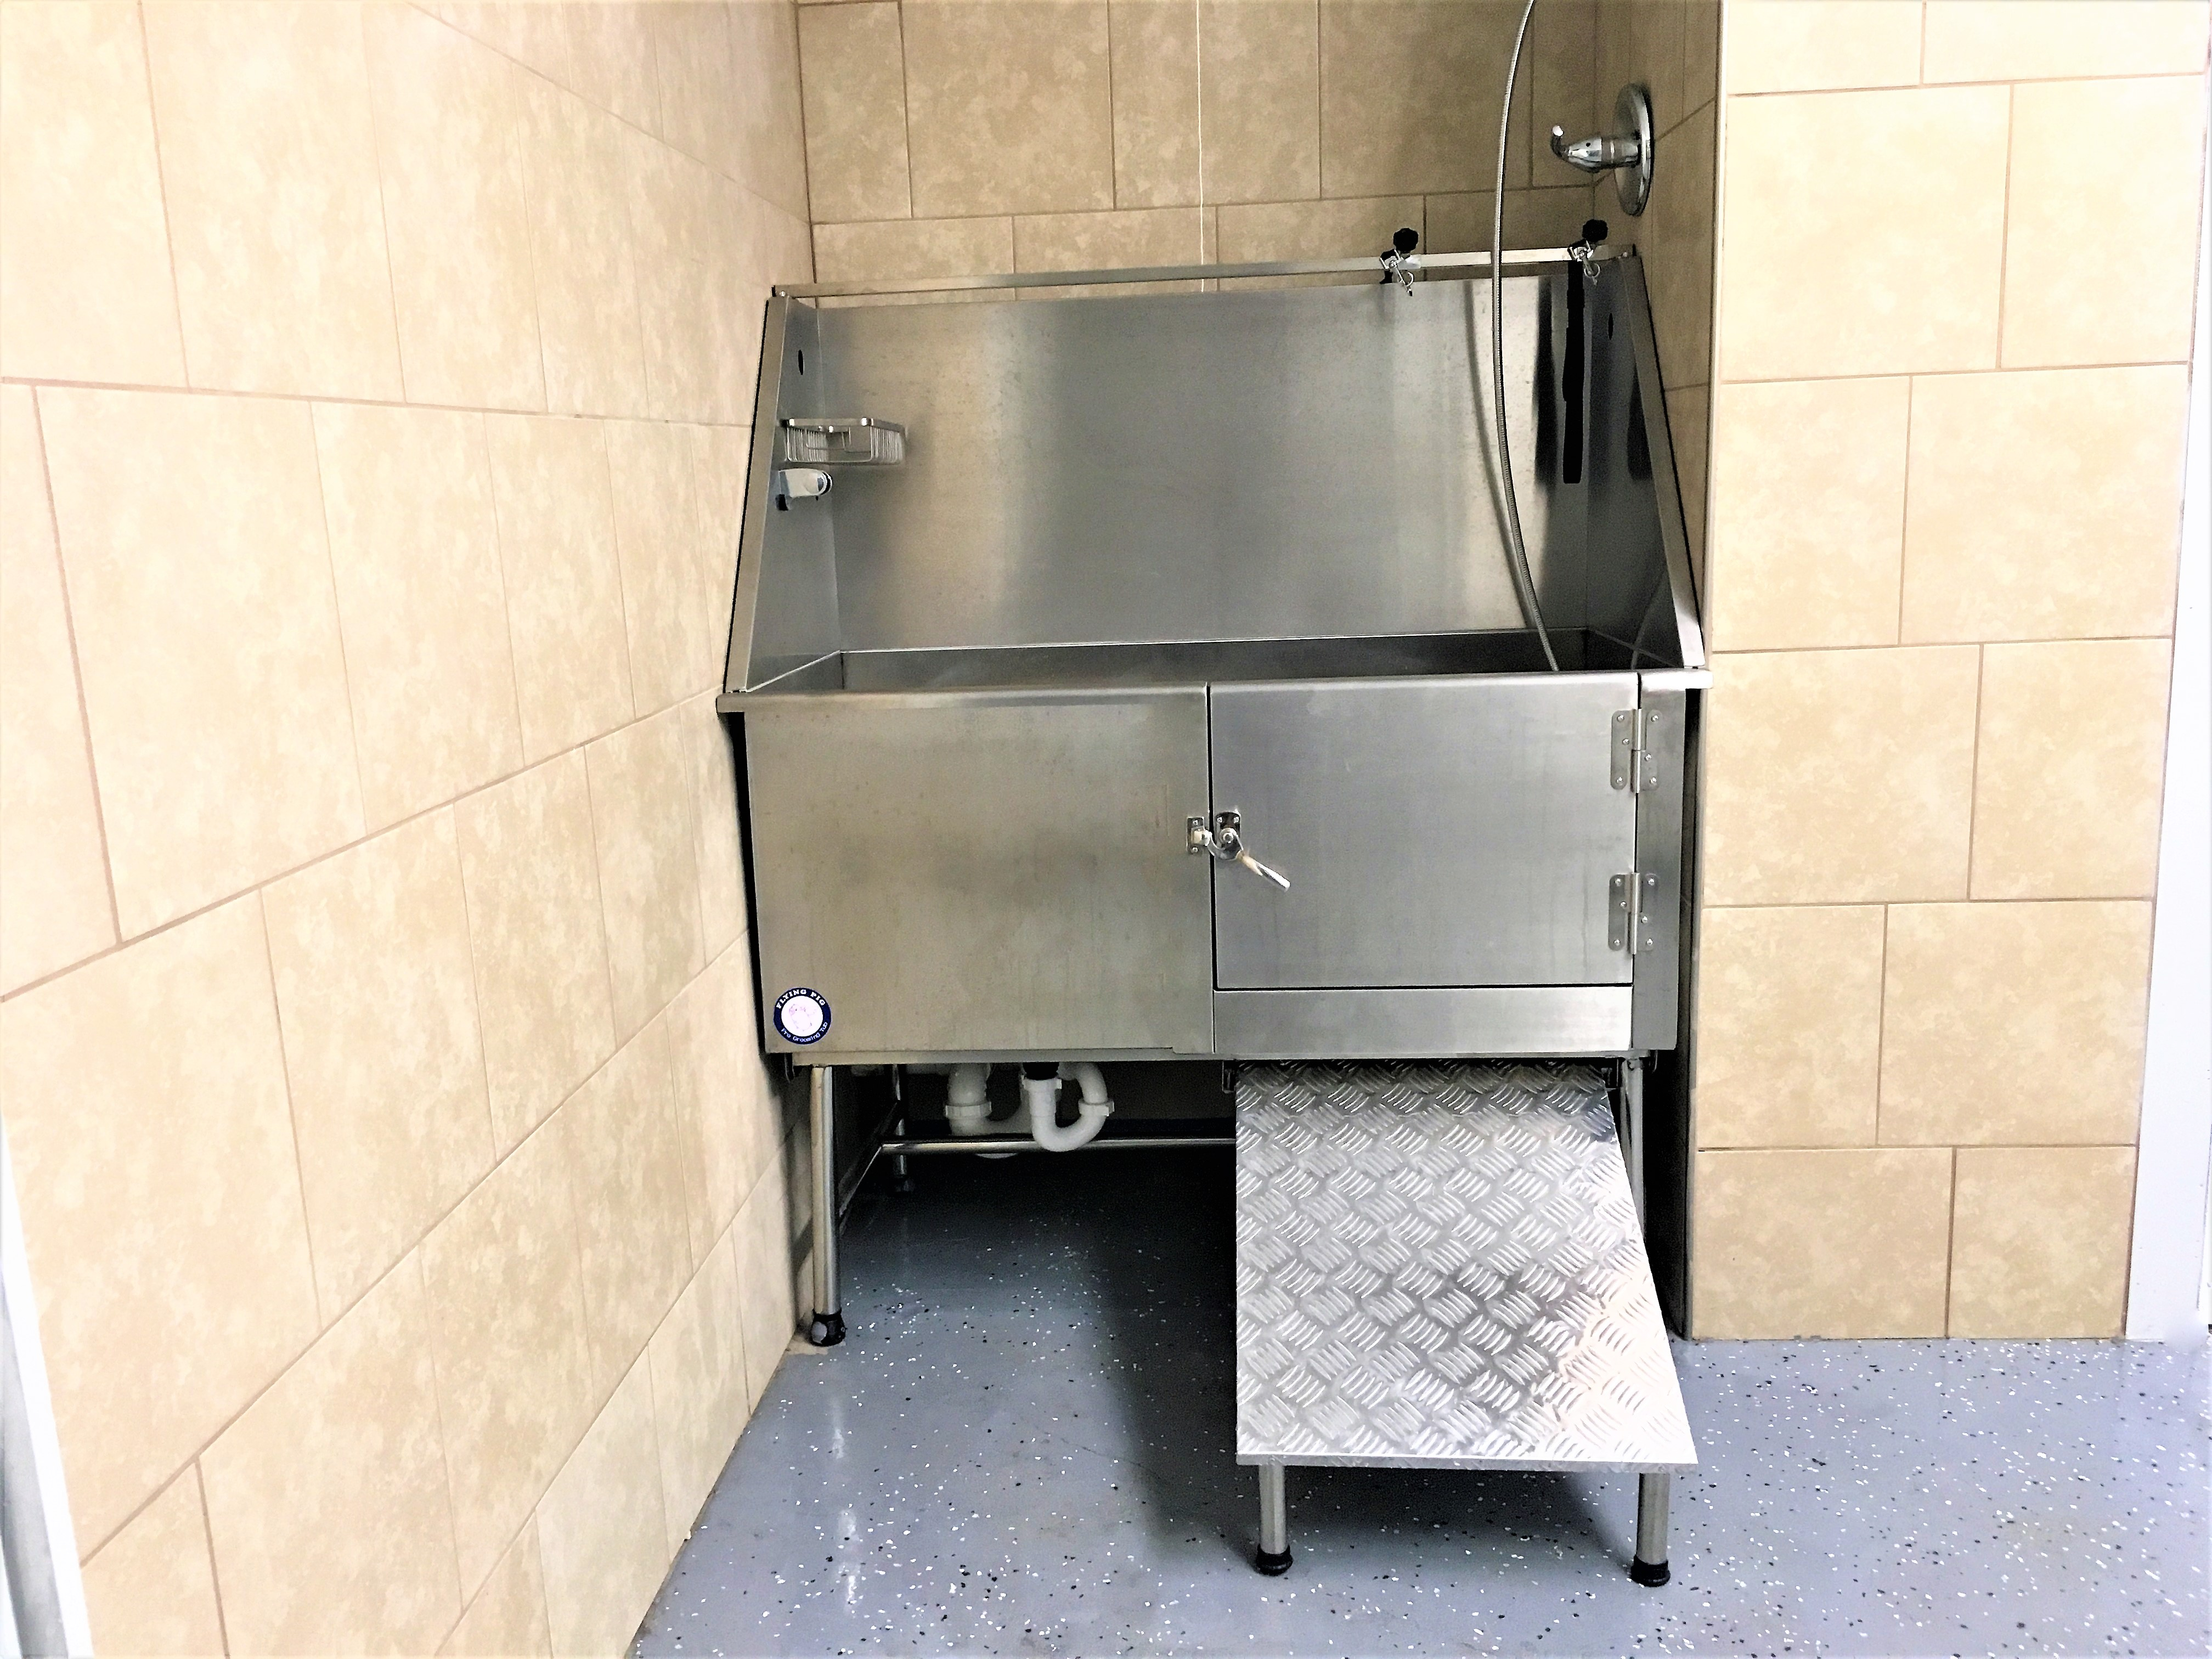 grooming tub in Veterinary clinic in Southern Pines